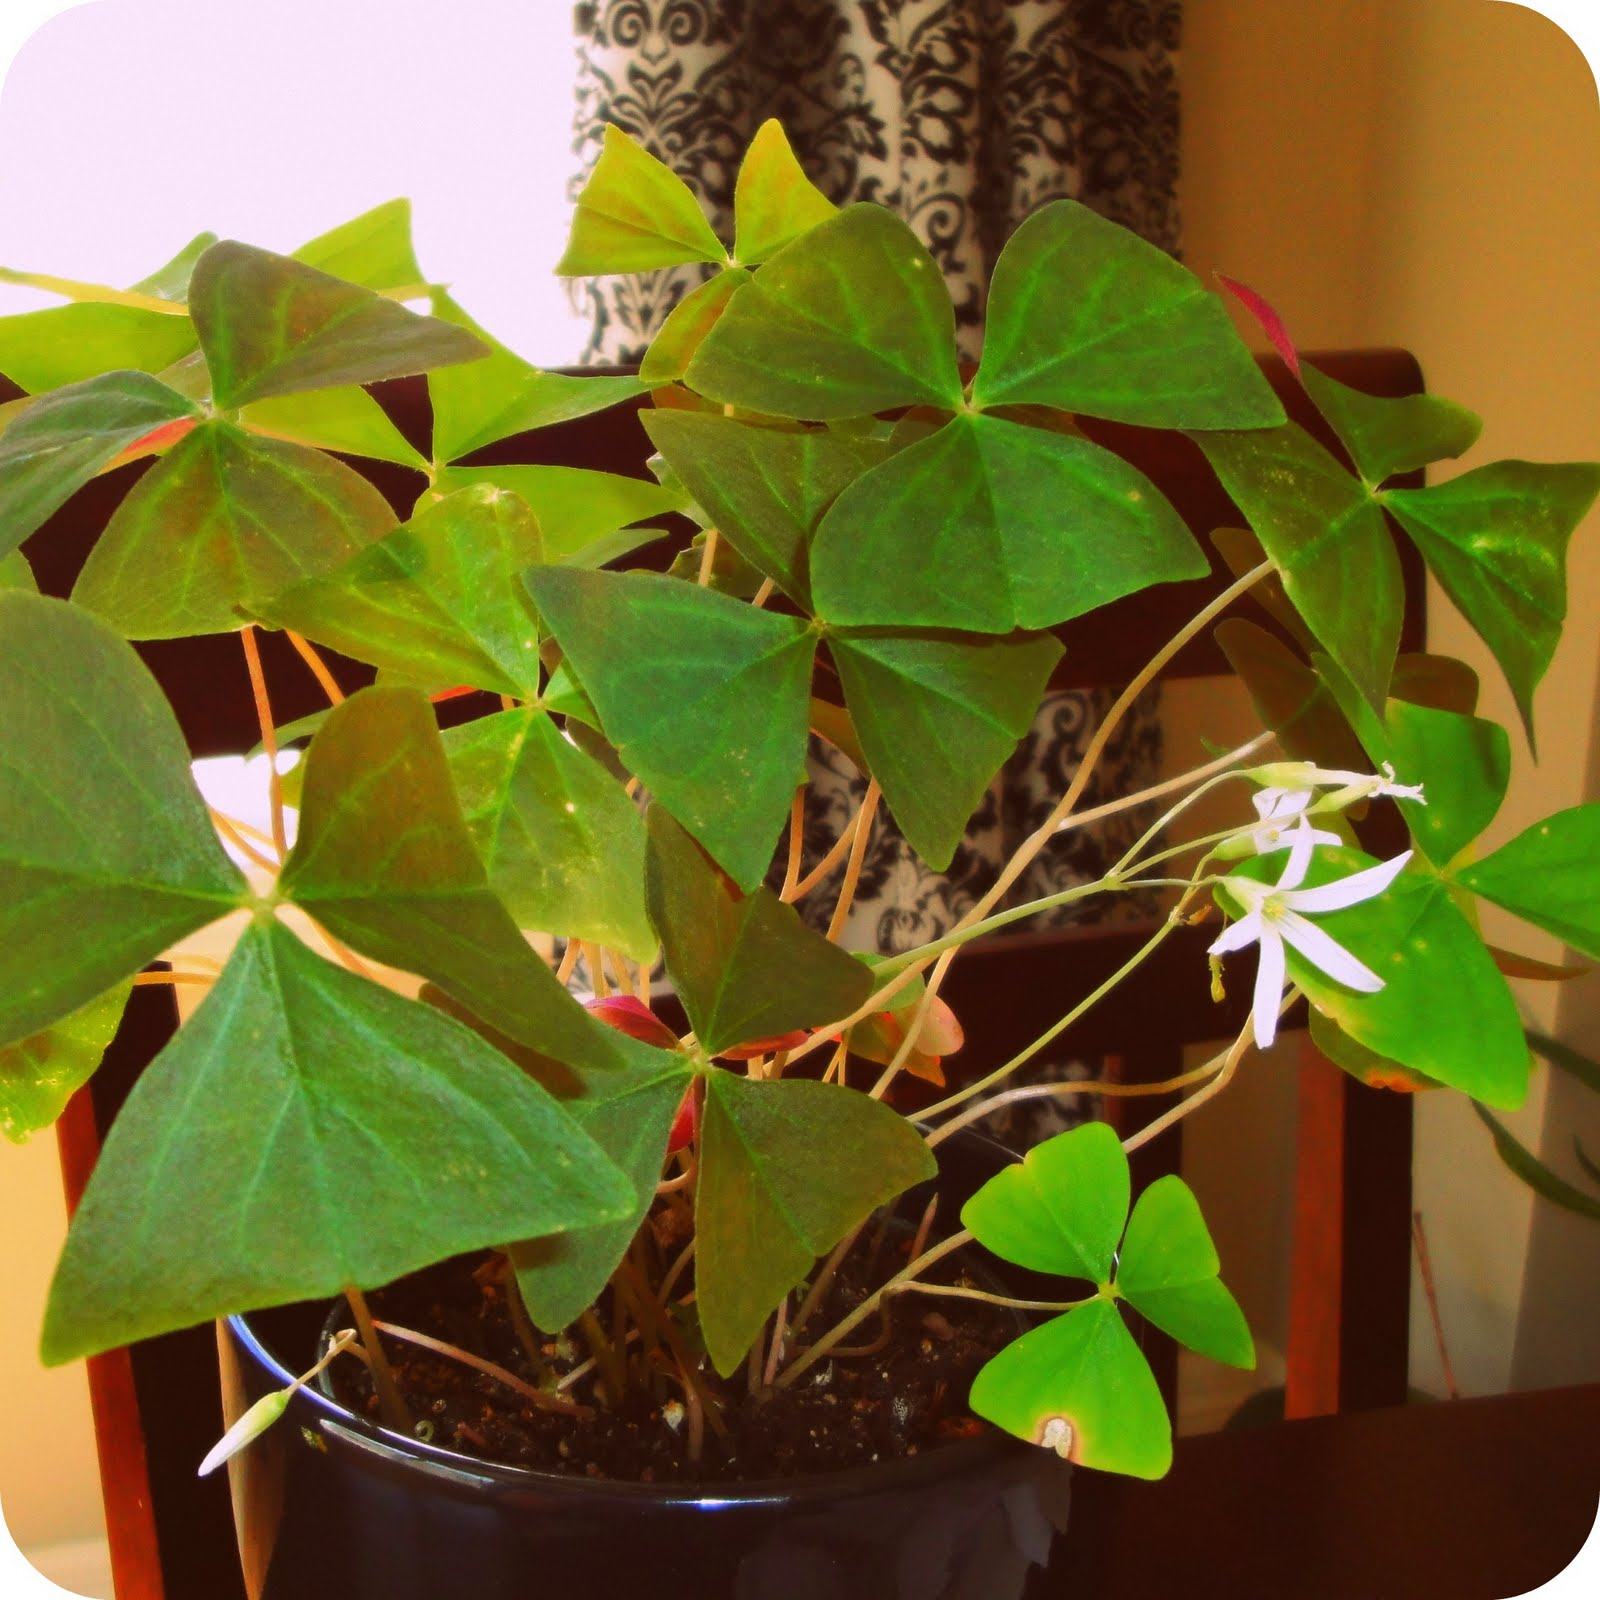 The scientific domestic house plants ii - House plants that like shade ...